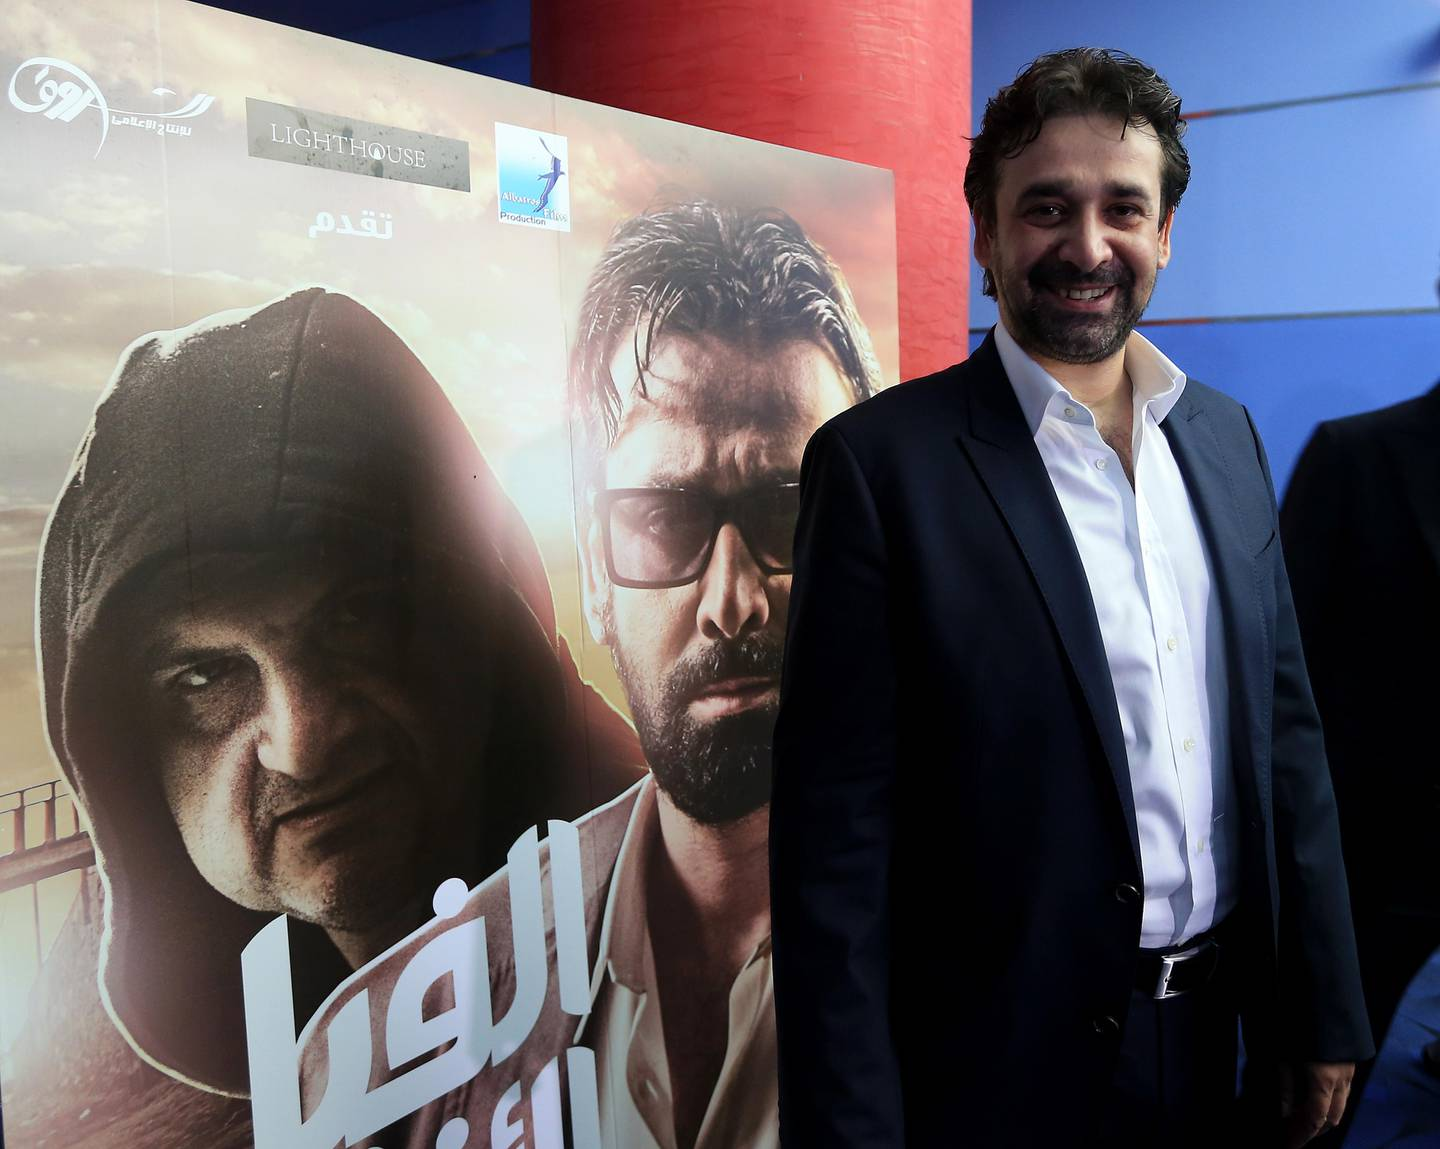 DUBAI - UNITED ARAB EMIRATES - 11AUG2014 - Karim Abdel Aziz, movie star of Blue Elephant before the press conference and preview of the movie on Monday at Dubai Festival city mall. Ravindranath K / The National (to go with Christopher Newbould story for Arts and Life)